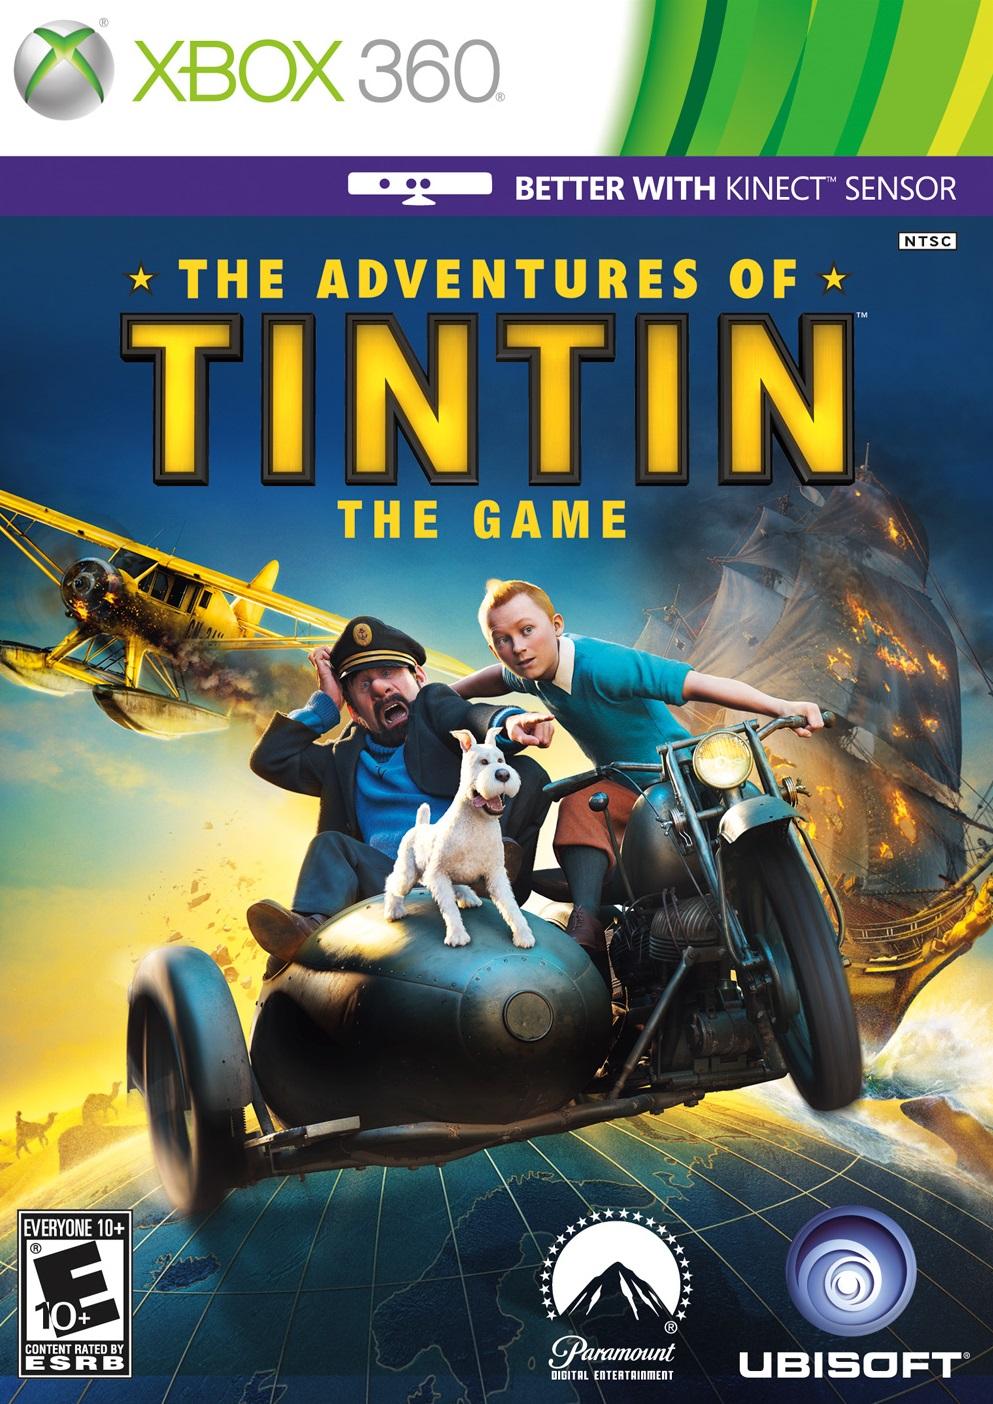 Adventures of Tintin: The Game Xbox 360 game